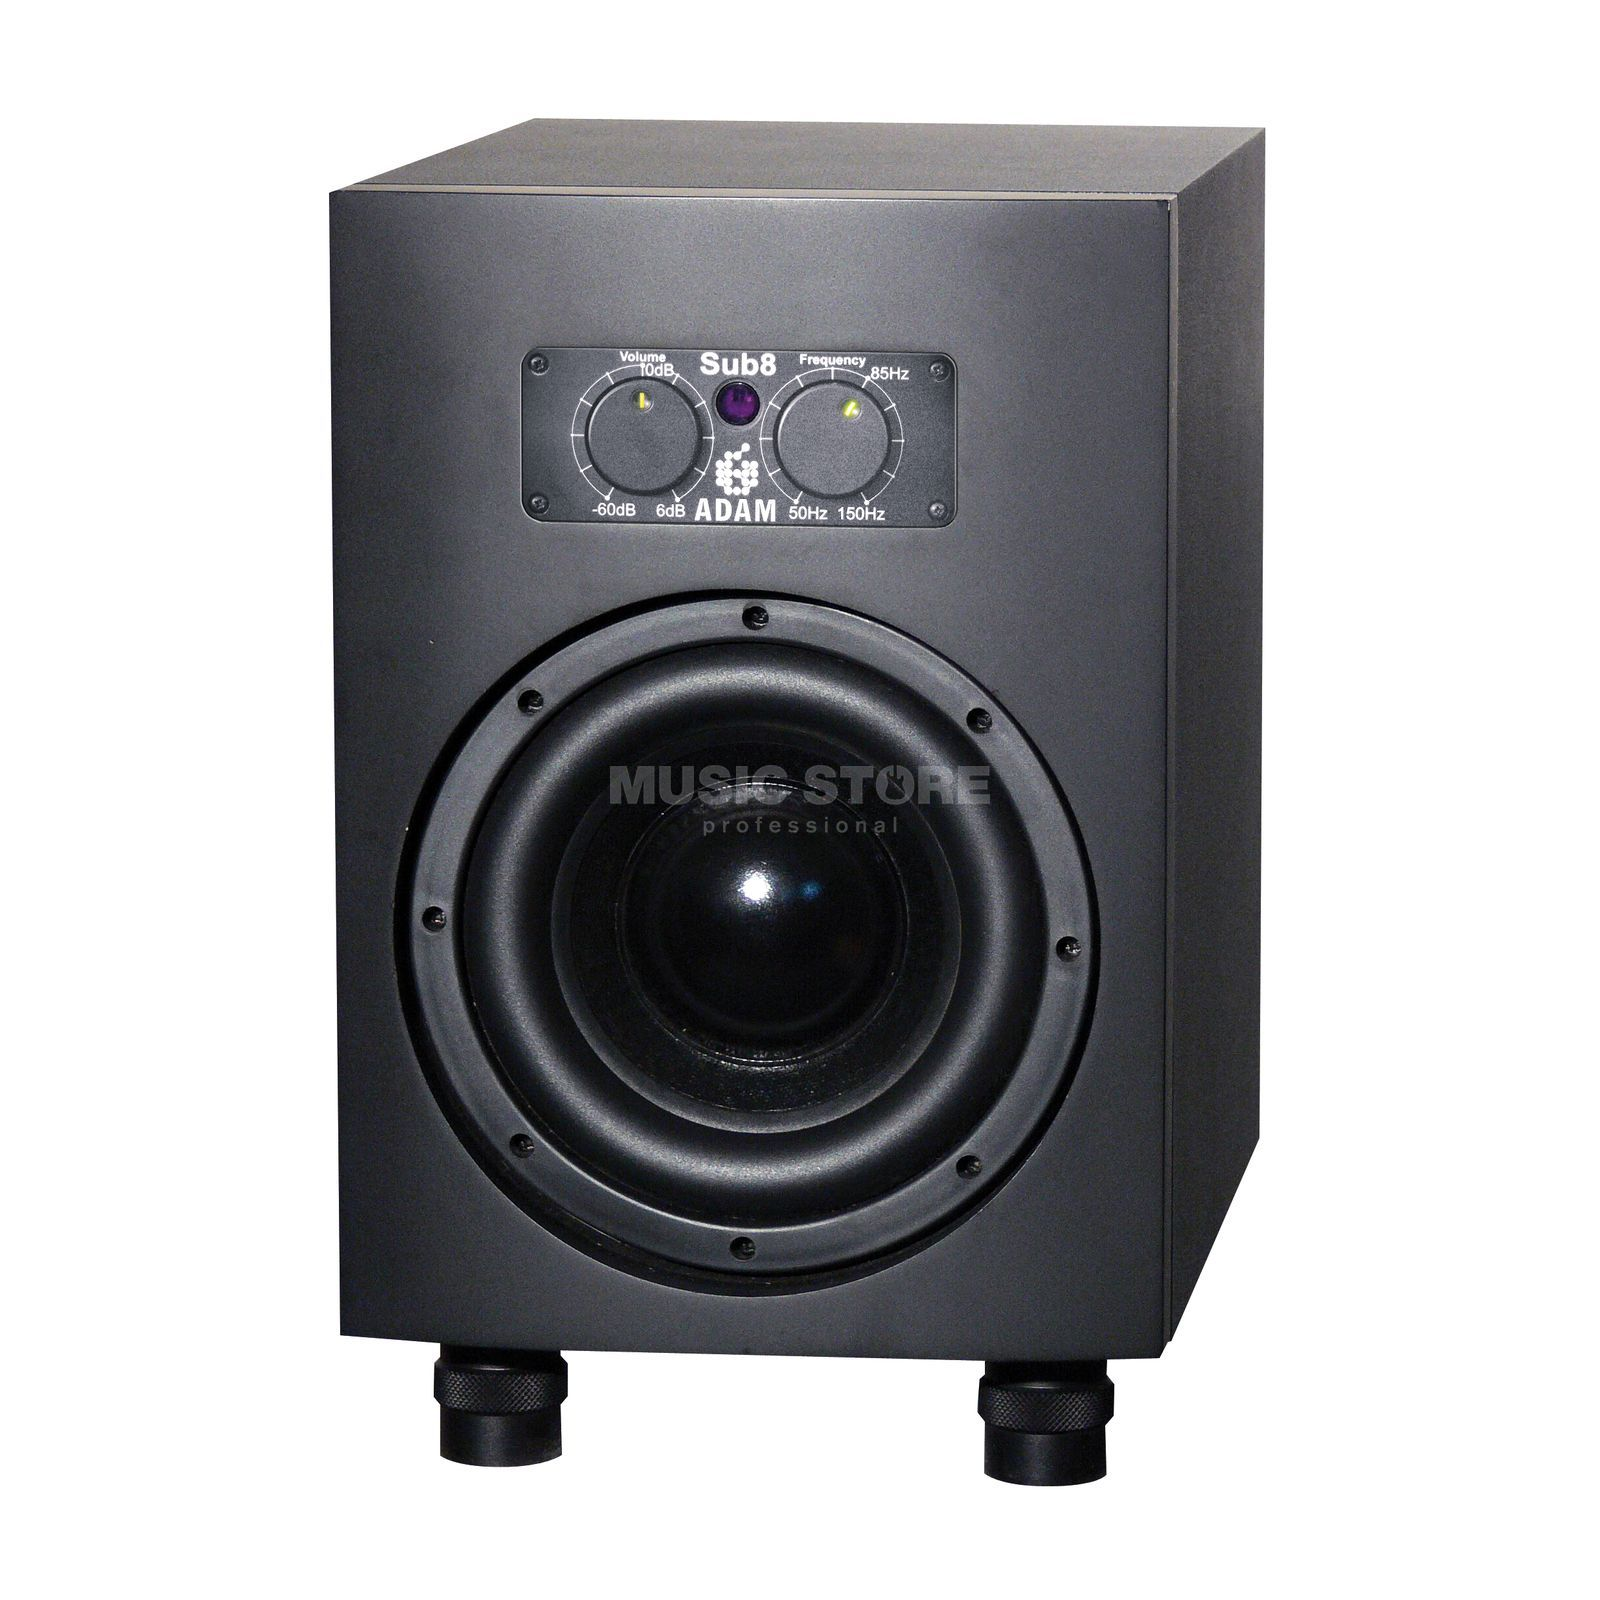 Adam Audio Sub 8 FR Subwoofer, factory refurbished Produktbillede